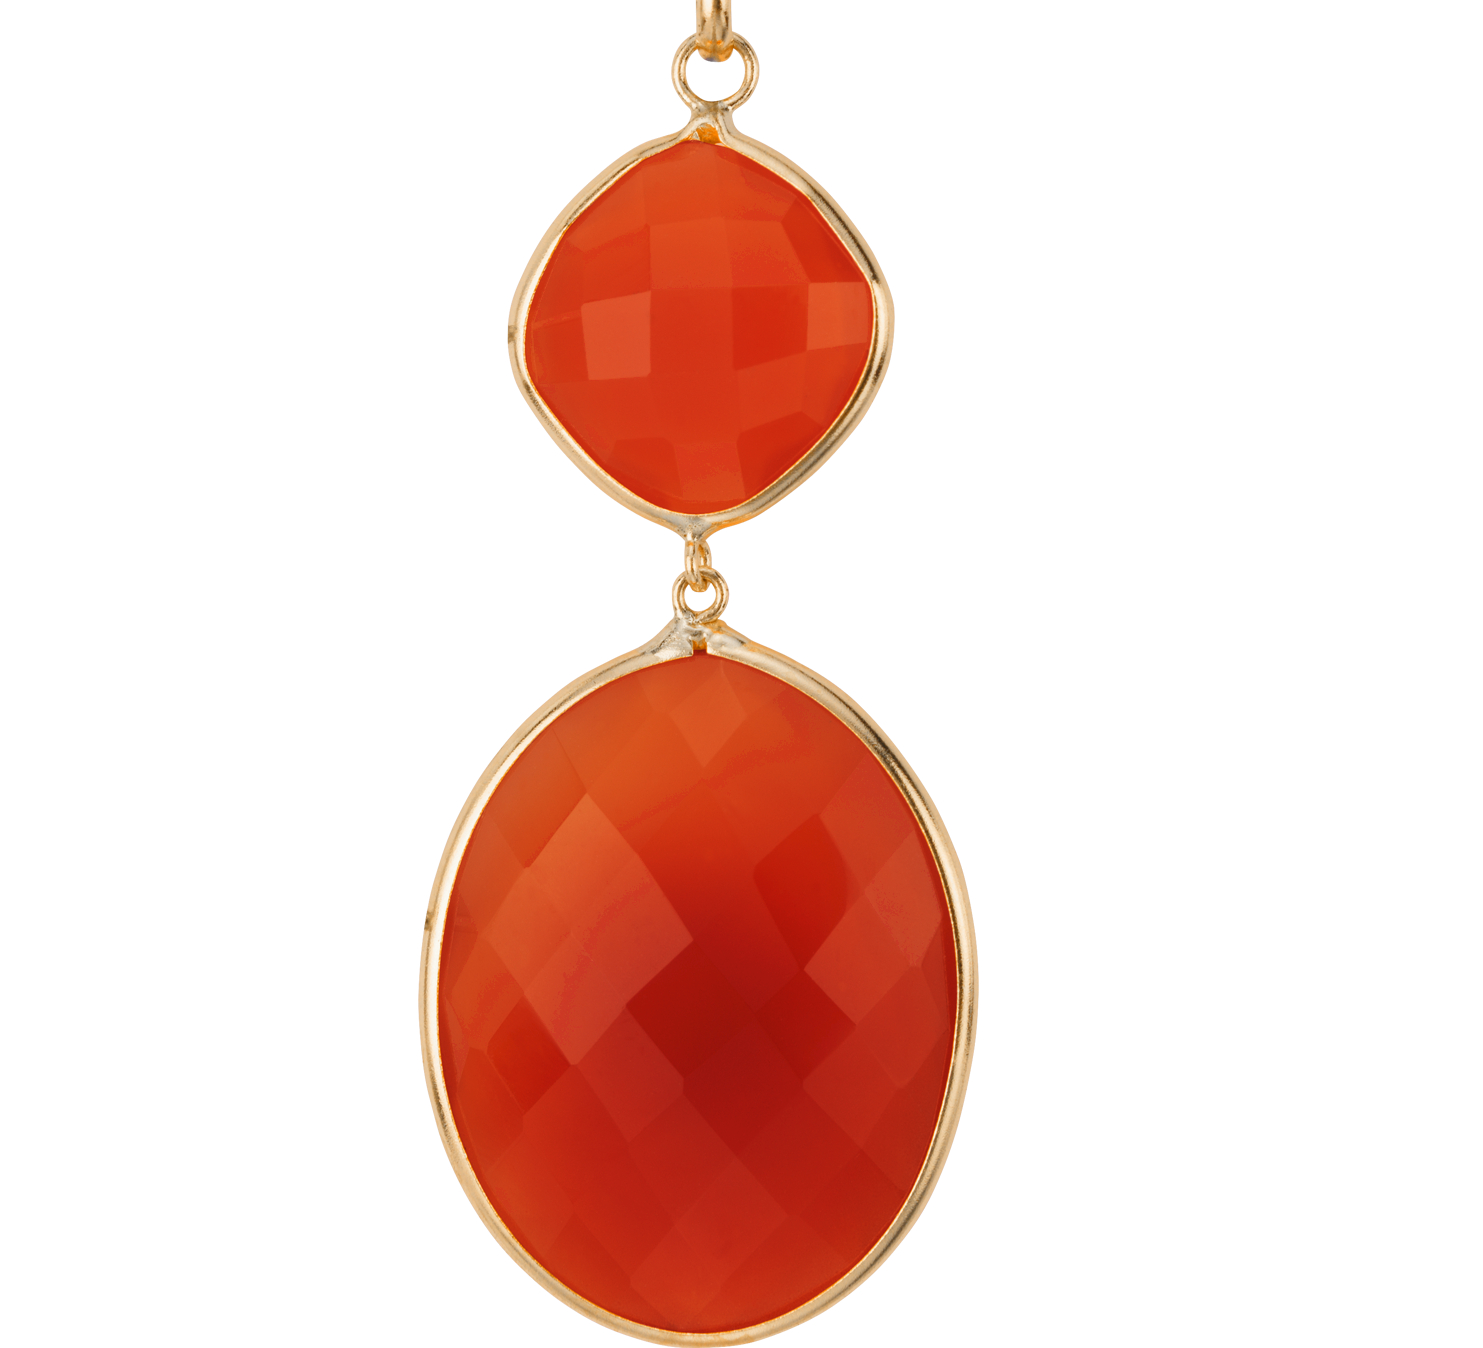 Carnelian Drop Pendant in 14k Yellow gold